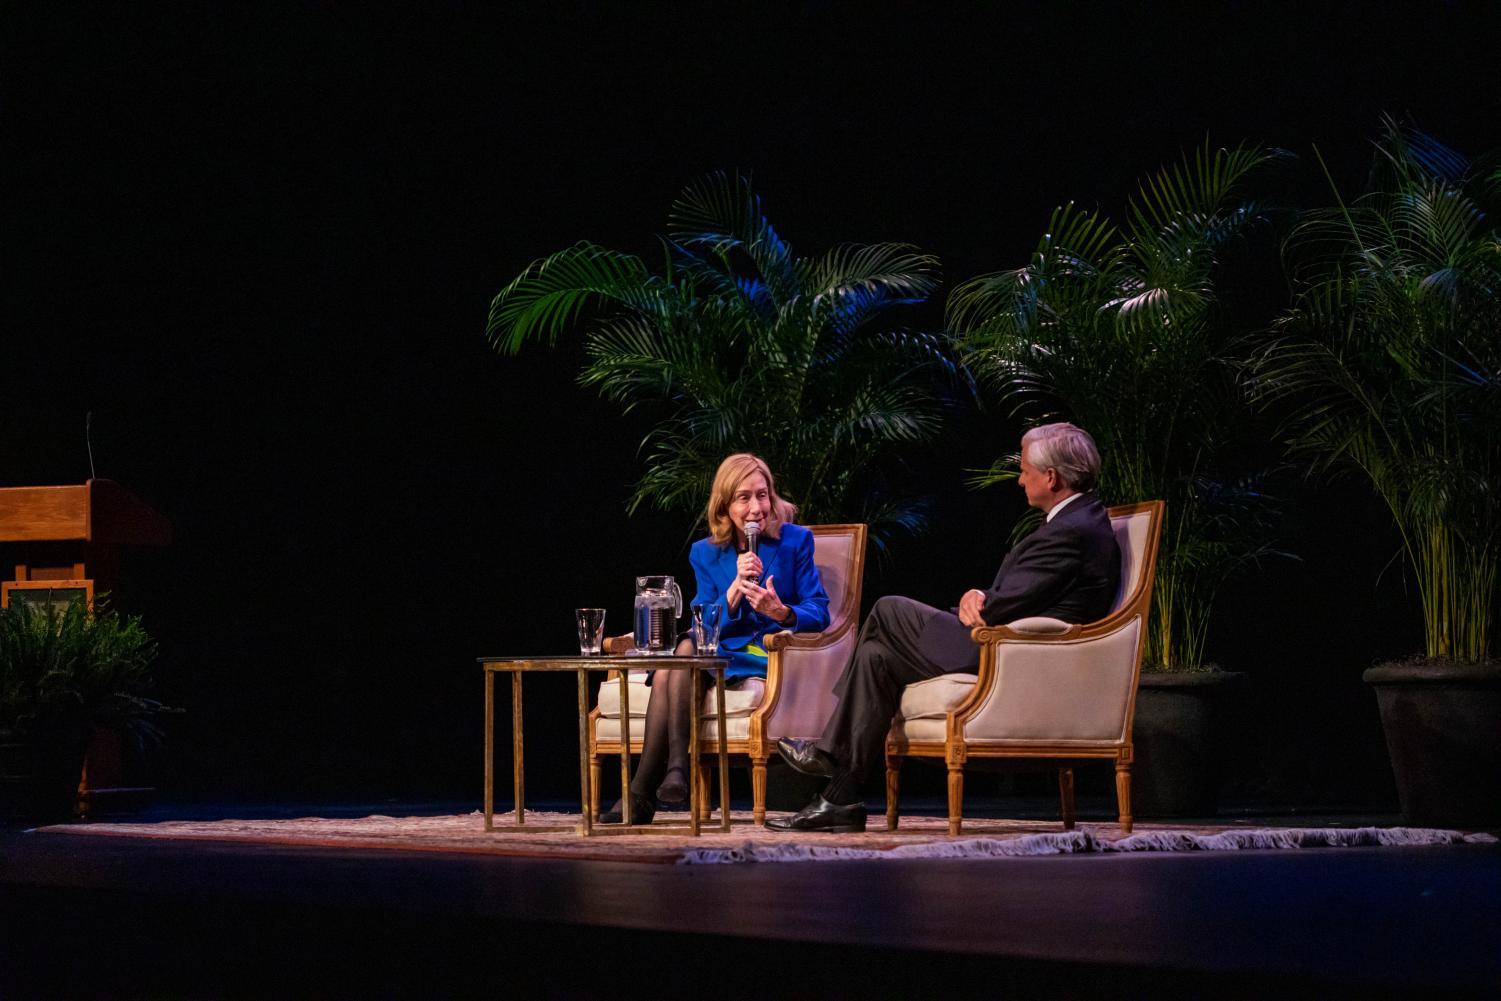 Pulitzer Prize-Winning historian Doris Kearn Goodwin on stage at Langford Auditorium with fellow Pulitzer Prize-Winning historian and Vanderbilt professor Jon Meacham on Nov. 3, 2019 (Photo by Emily Gonçalves)